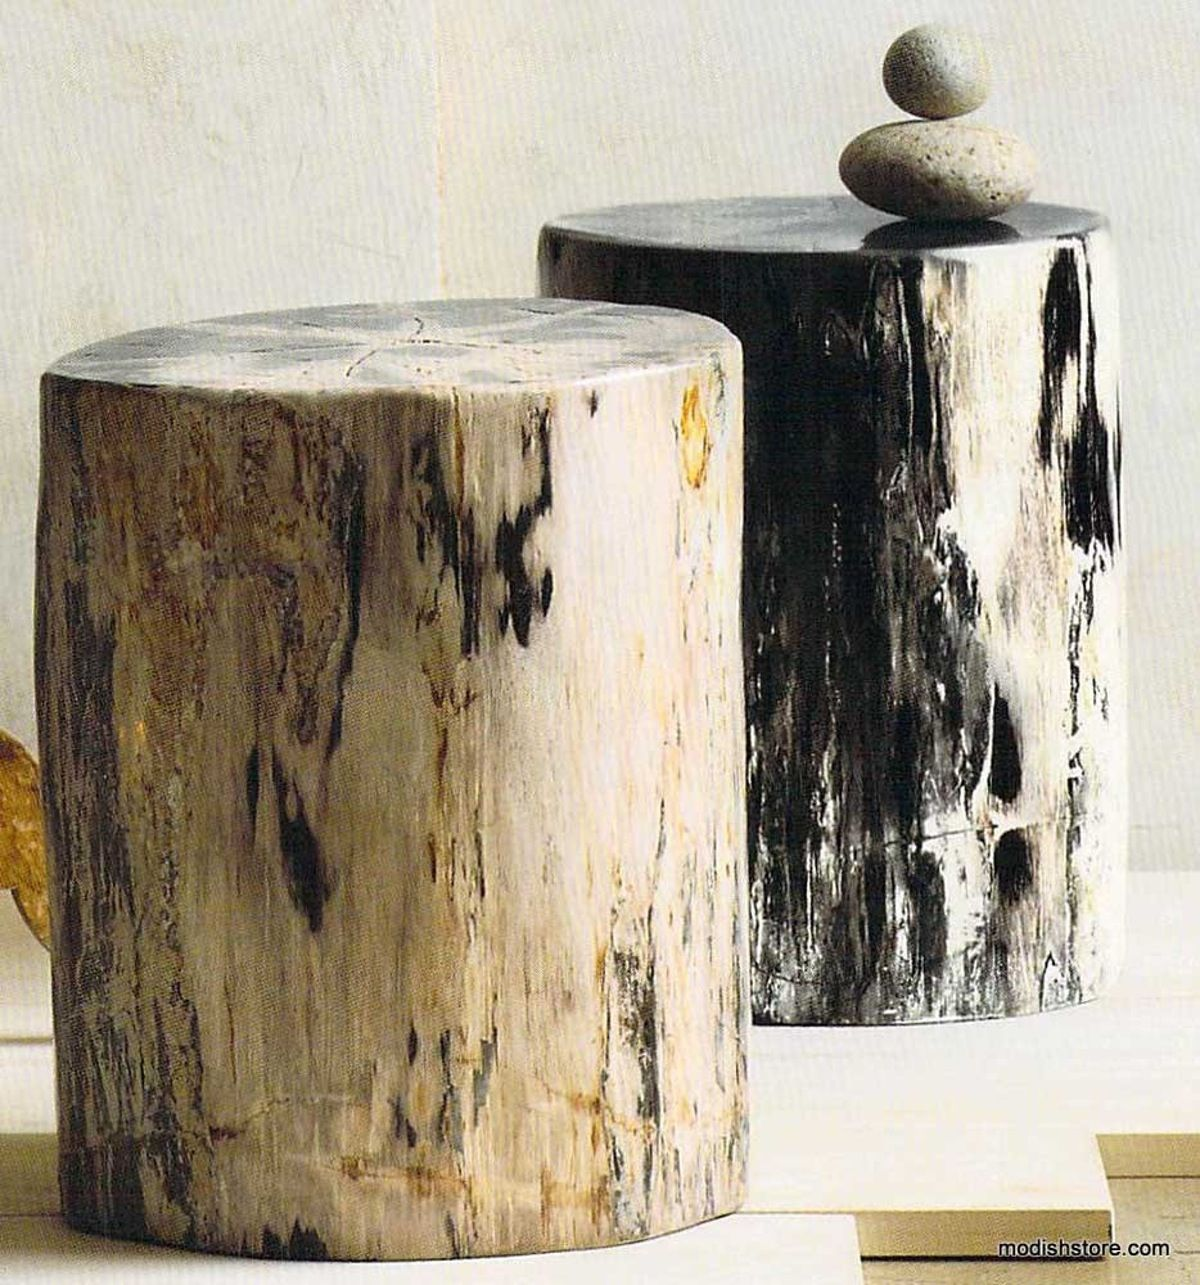 Roost Petrified Wood Stools are made from polished sections of these fossilized logs. The stools are naturally unique and vary in dimension and color. Organic material